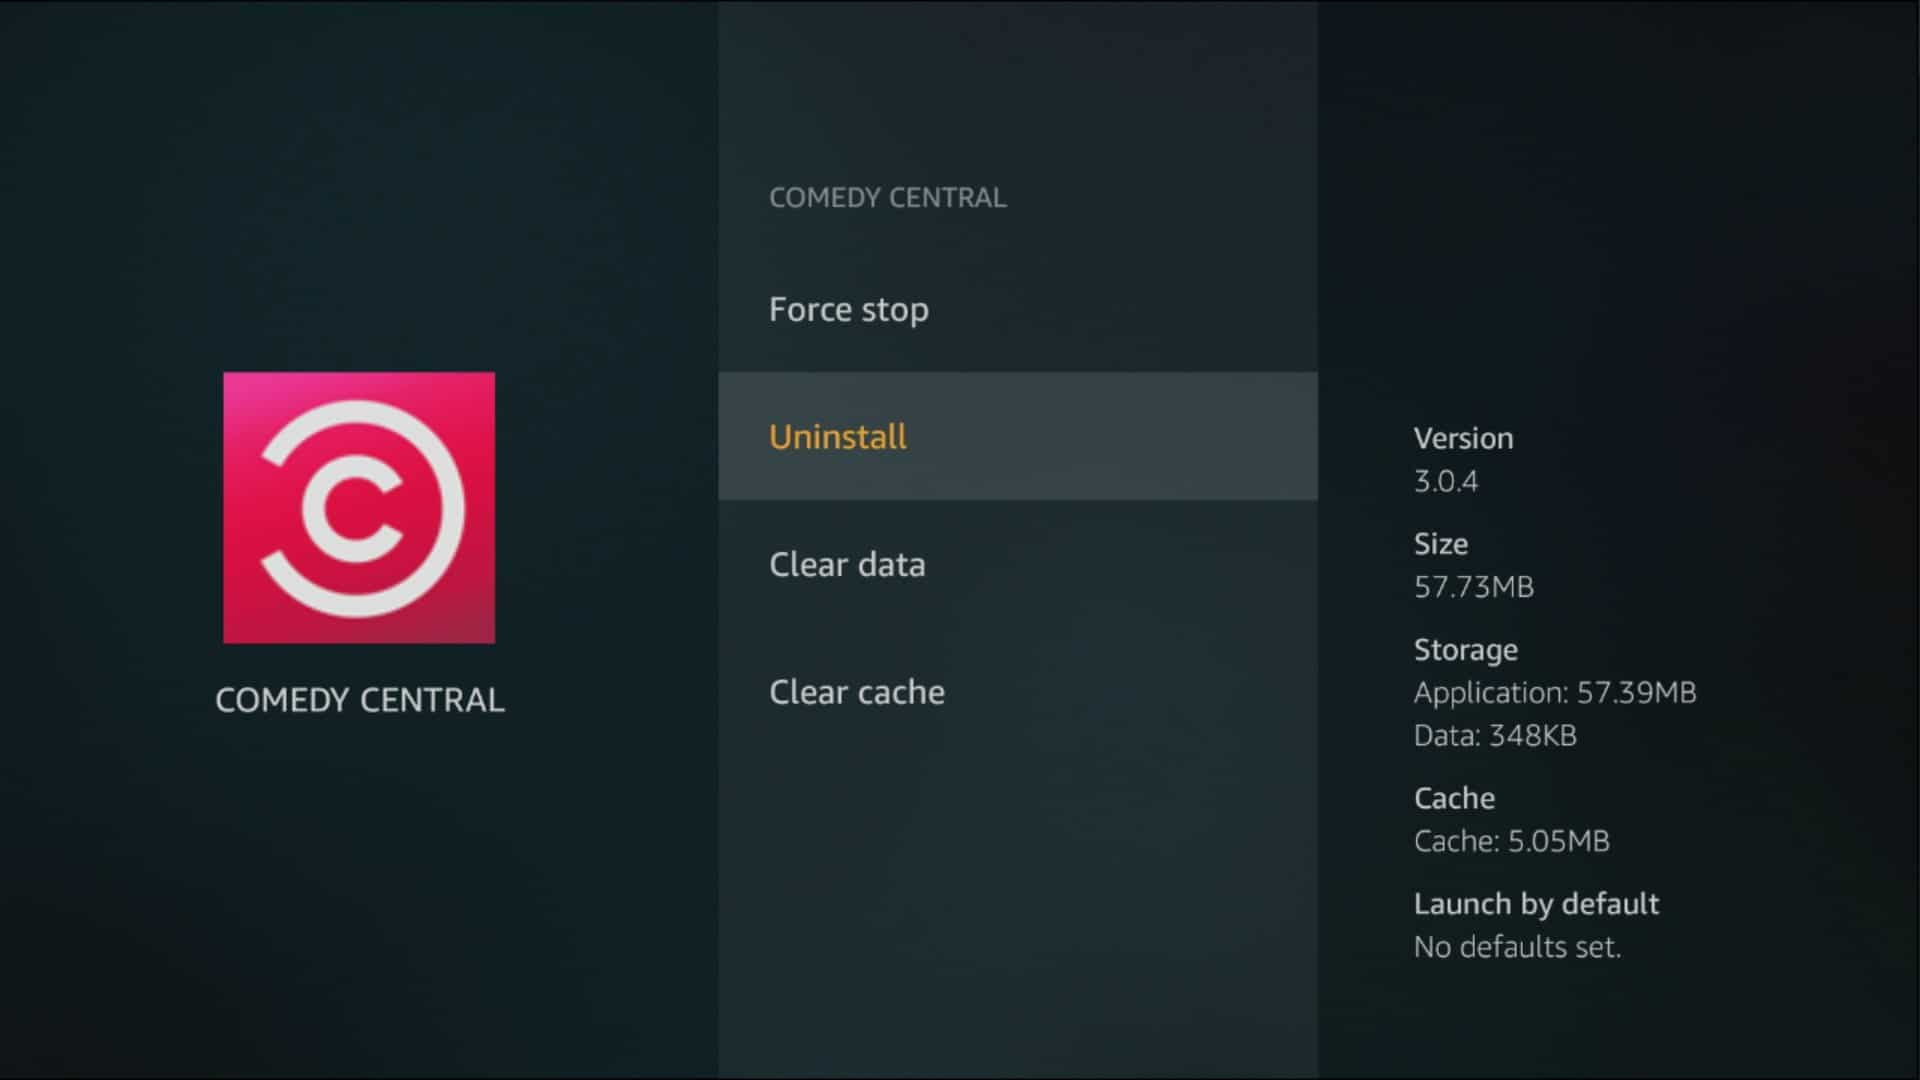 fire tv app stop uninstall